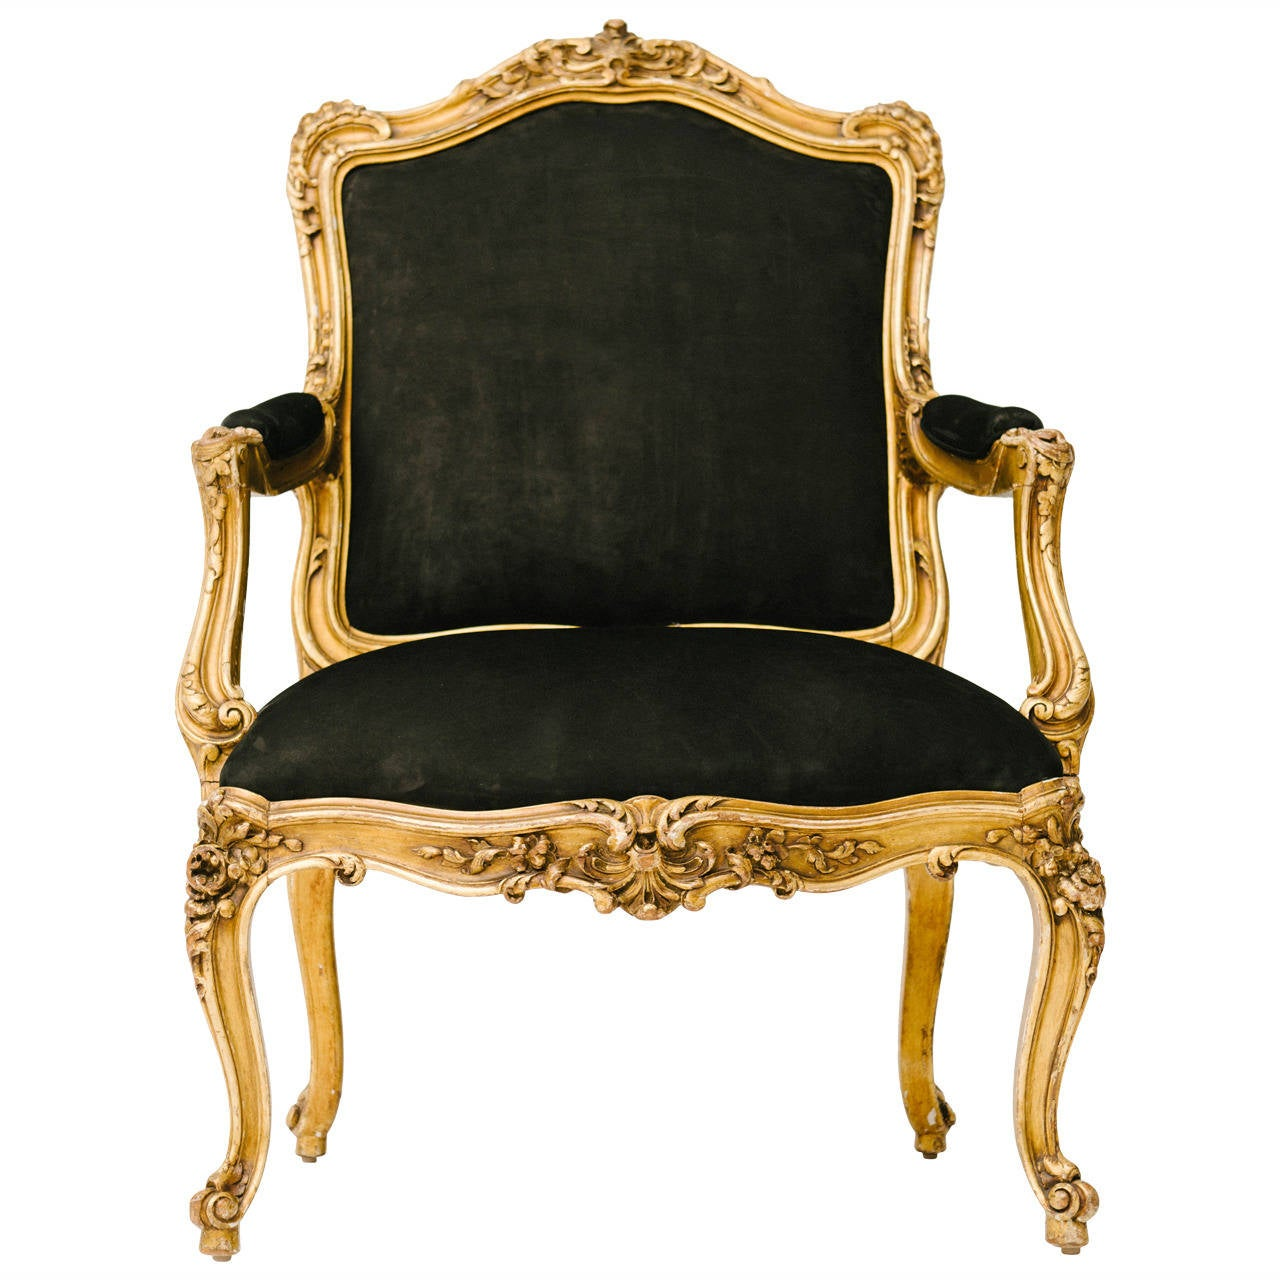 19th century louis xv style gilt fauteuil in black nubuck leather at 1stdibs - Fauteuil style louis xv ...